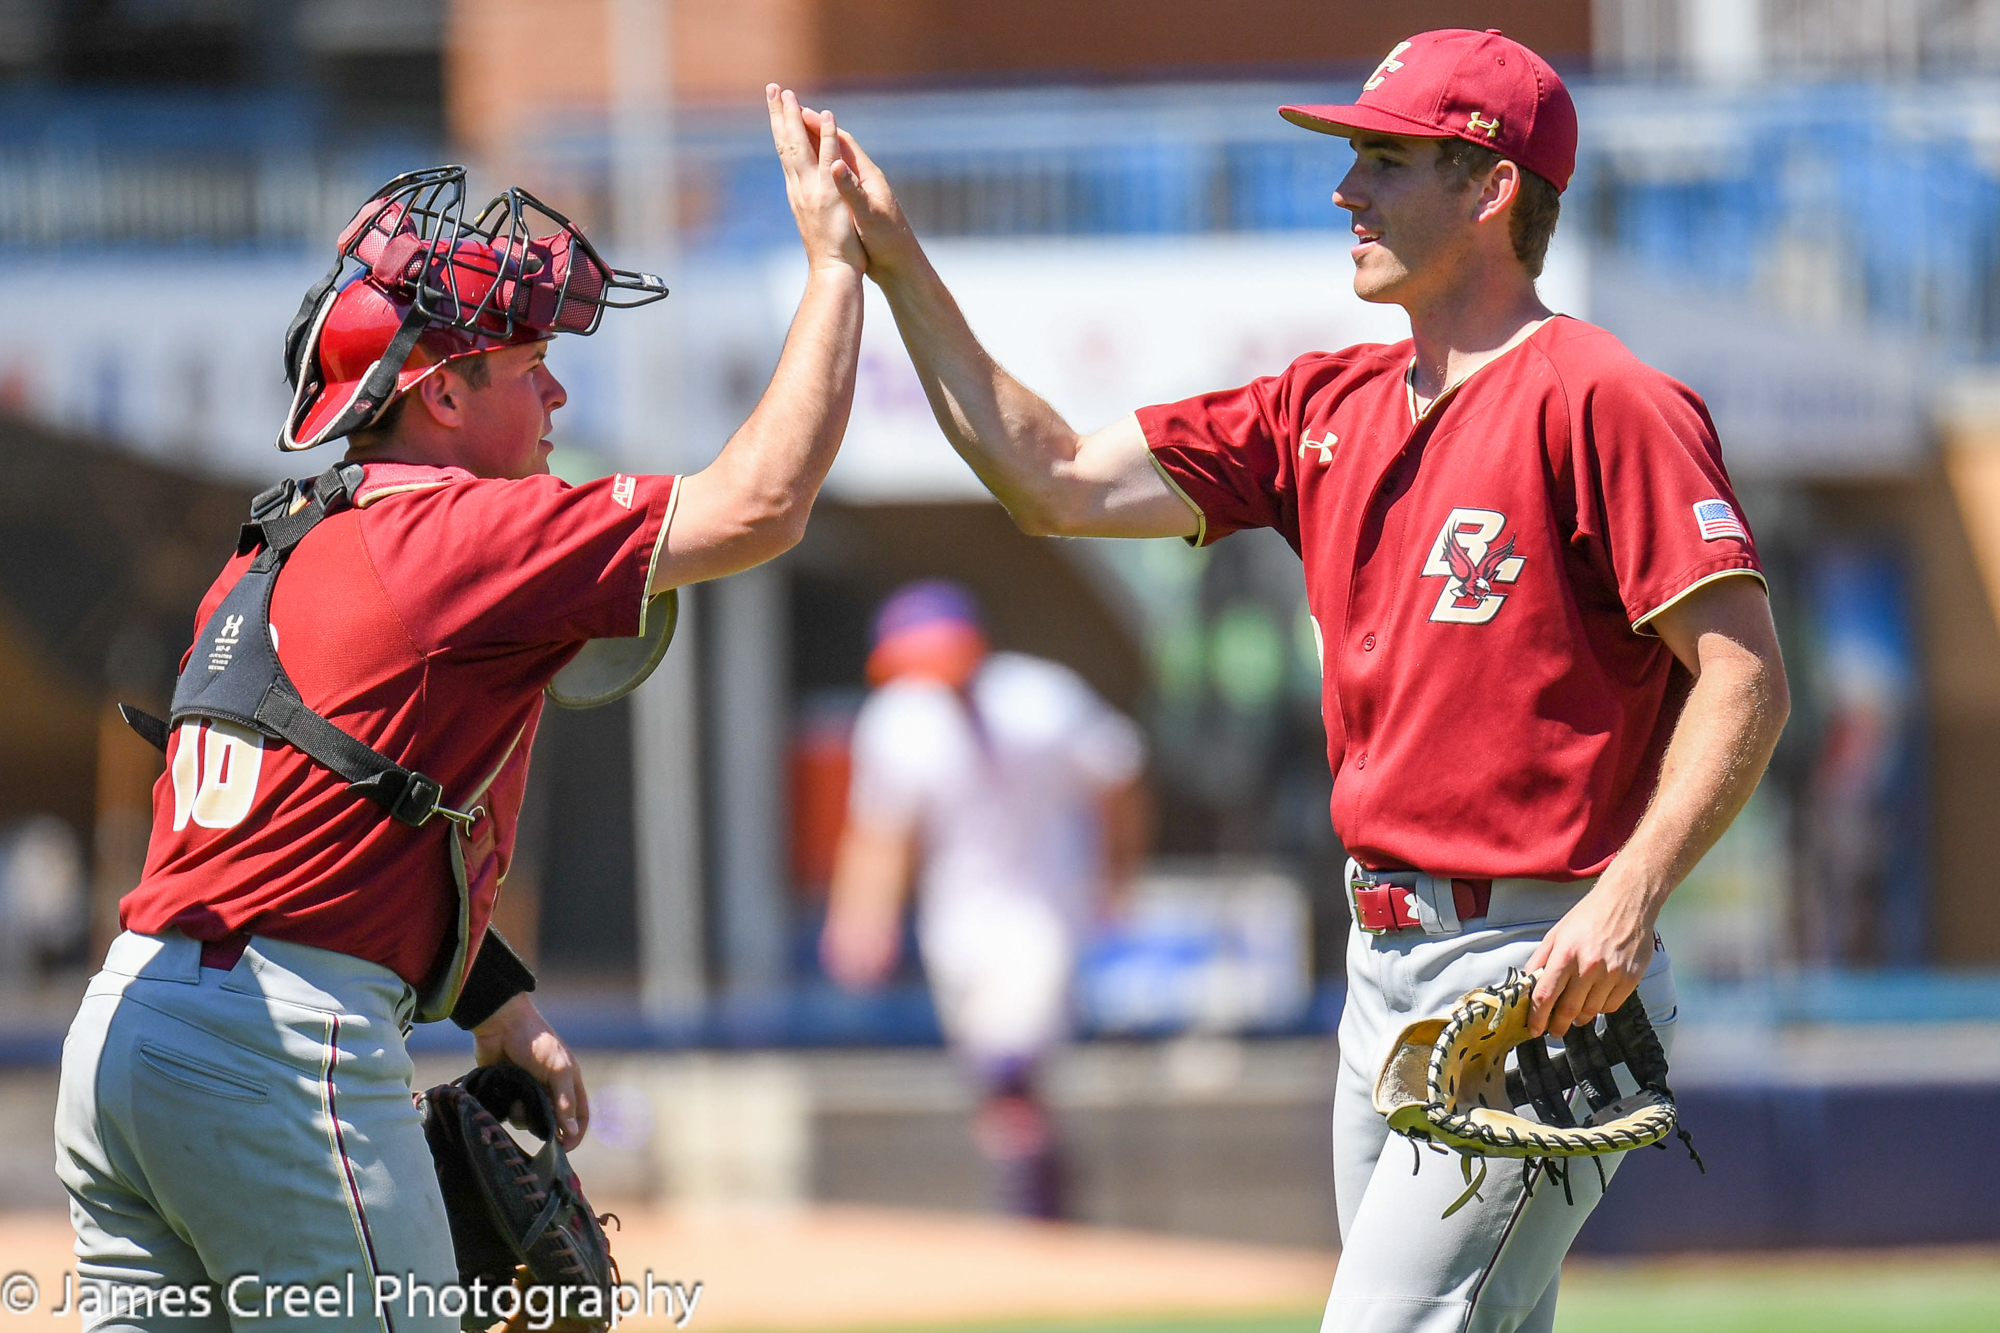 CBD Photo Gallery: Boston College 7 Clemson 5 (11 Innings)